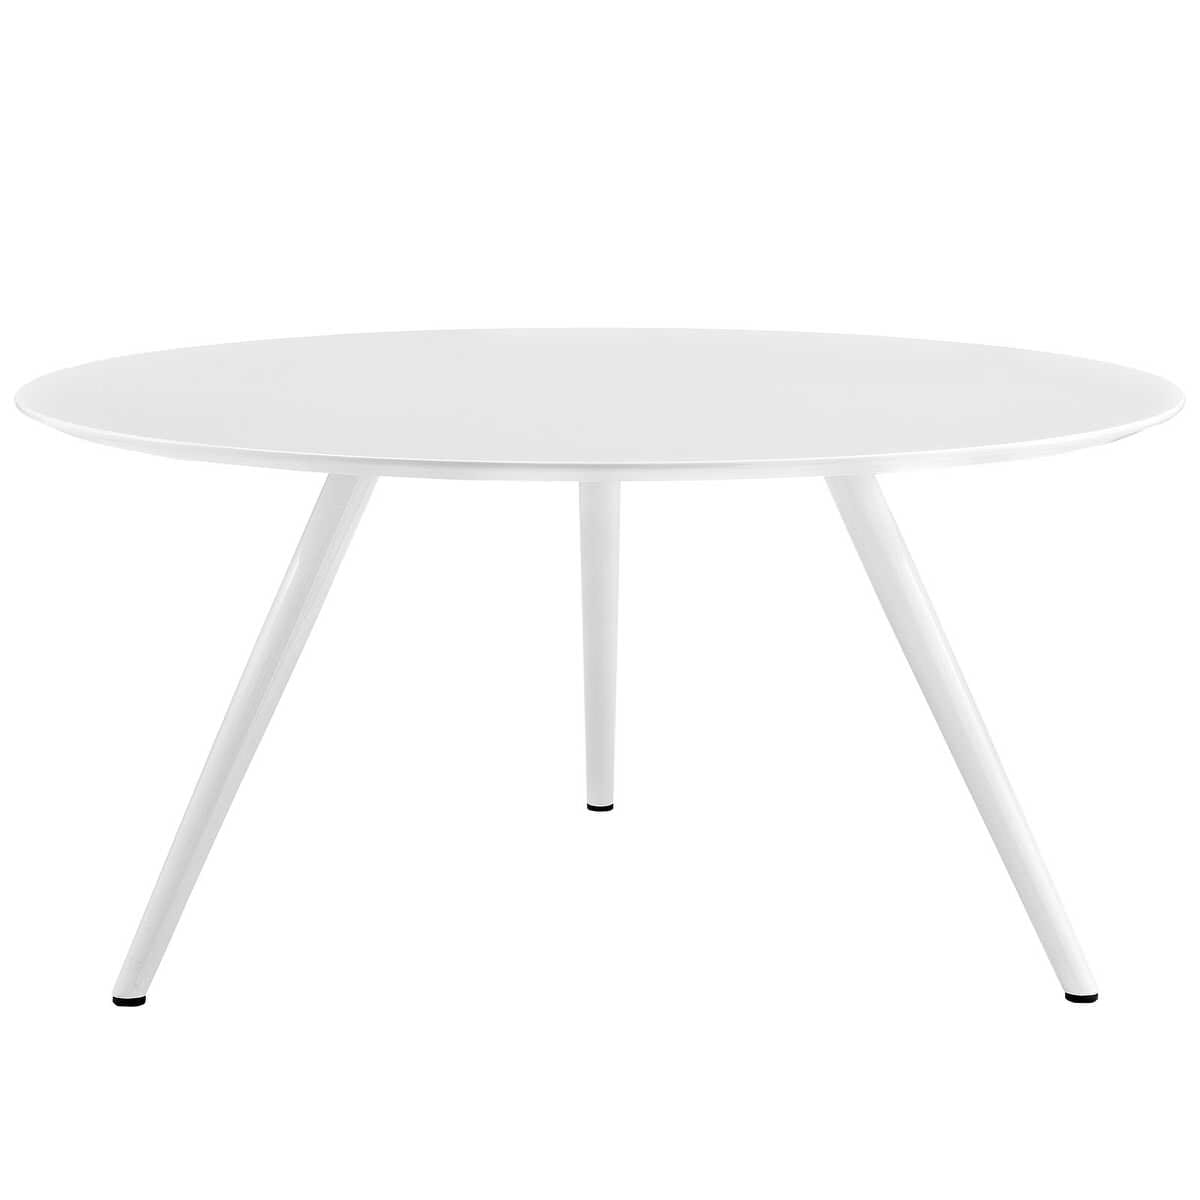 Lippa Inch Round Wood Top Dining Table With Tripod Base White By - Modern 60 inch round dining table